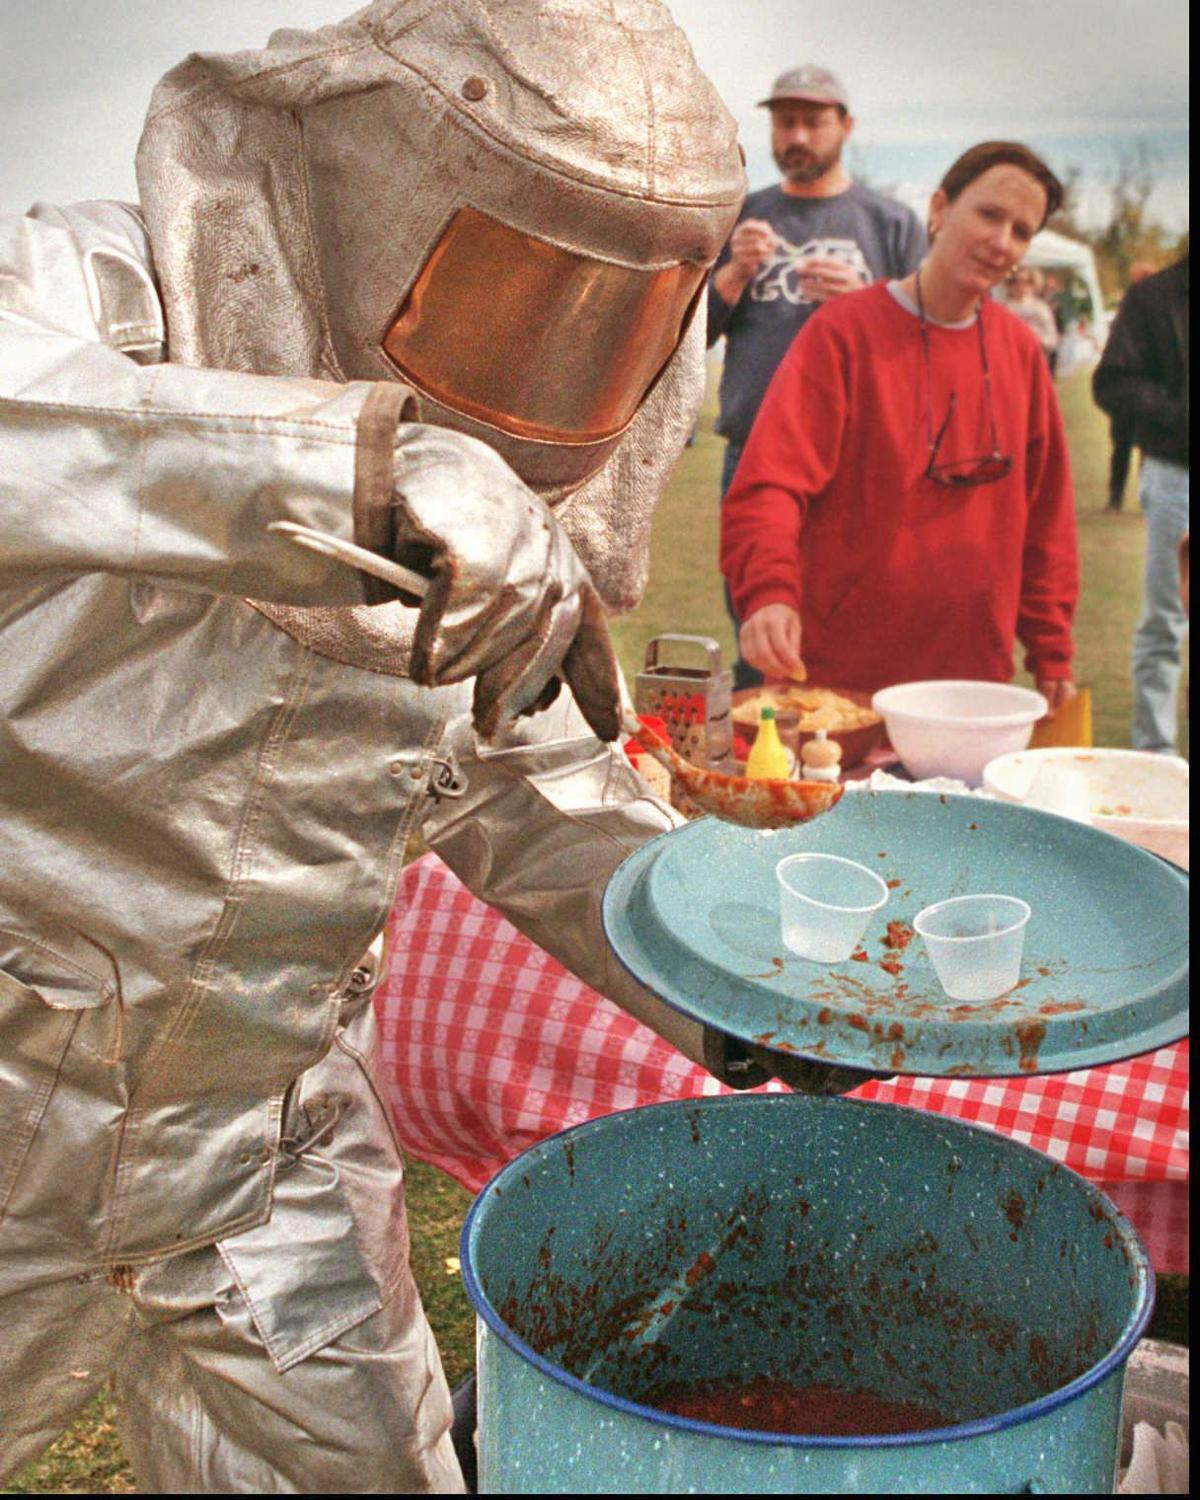 Chili Cook-Off fire suit